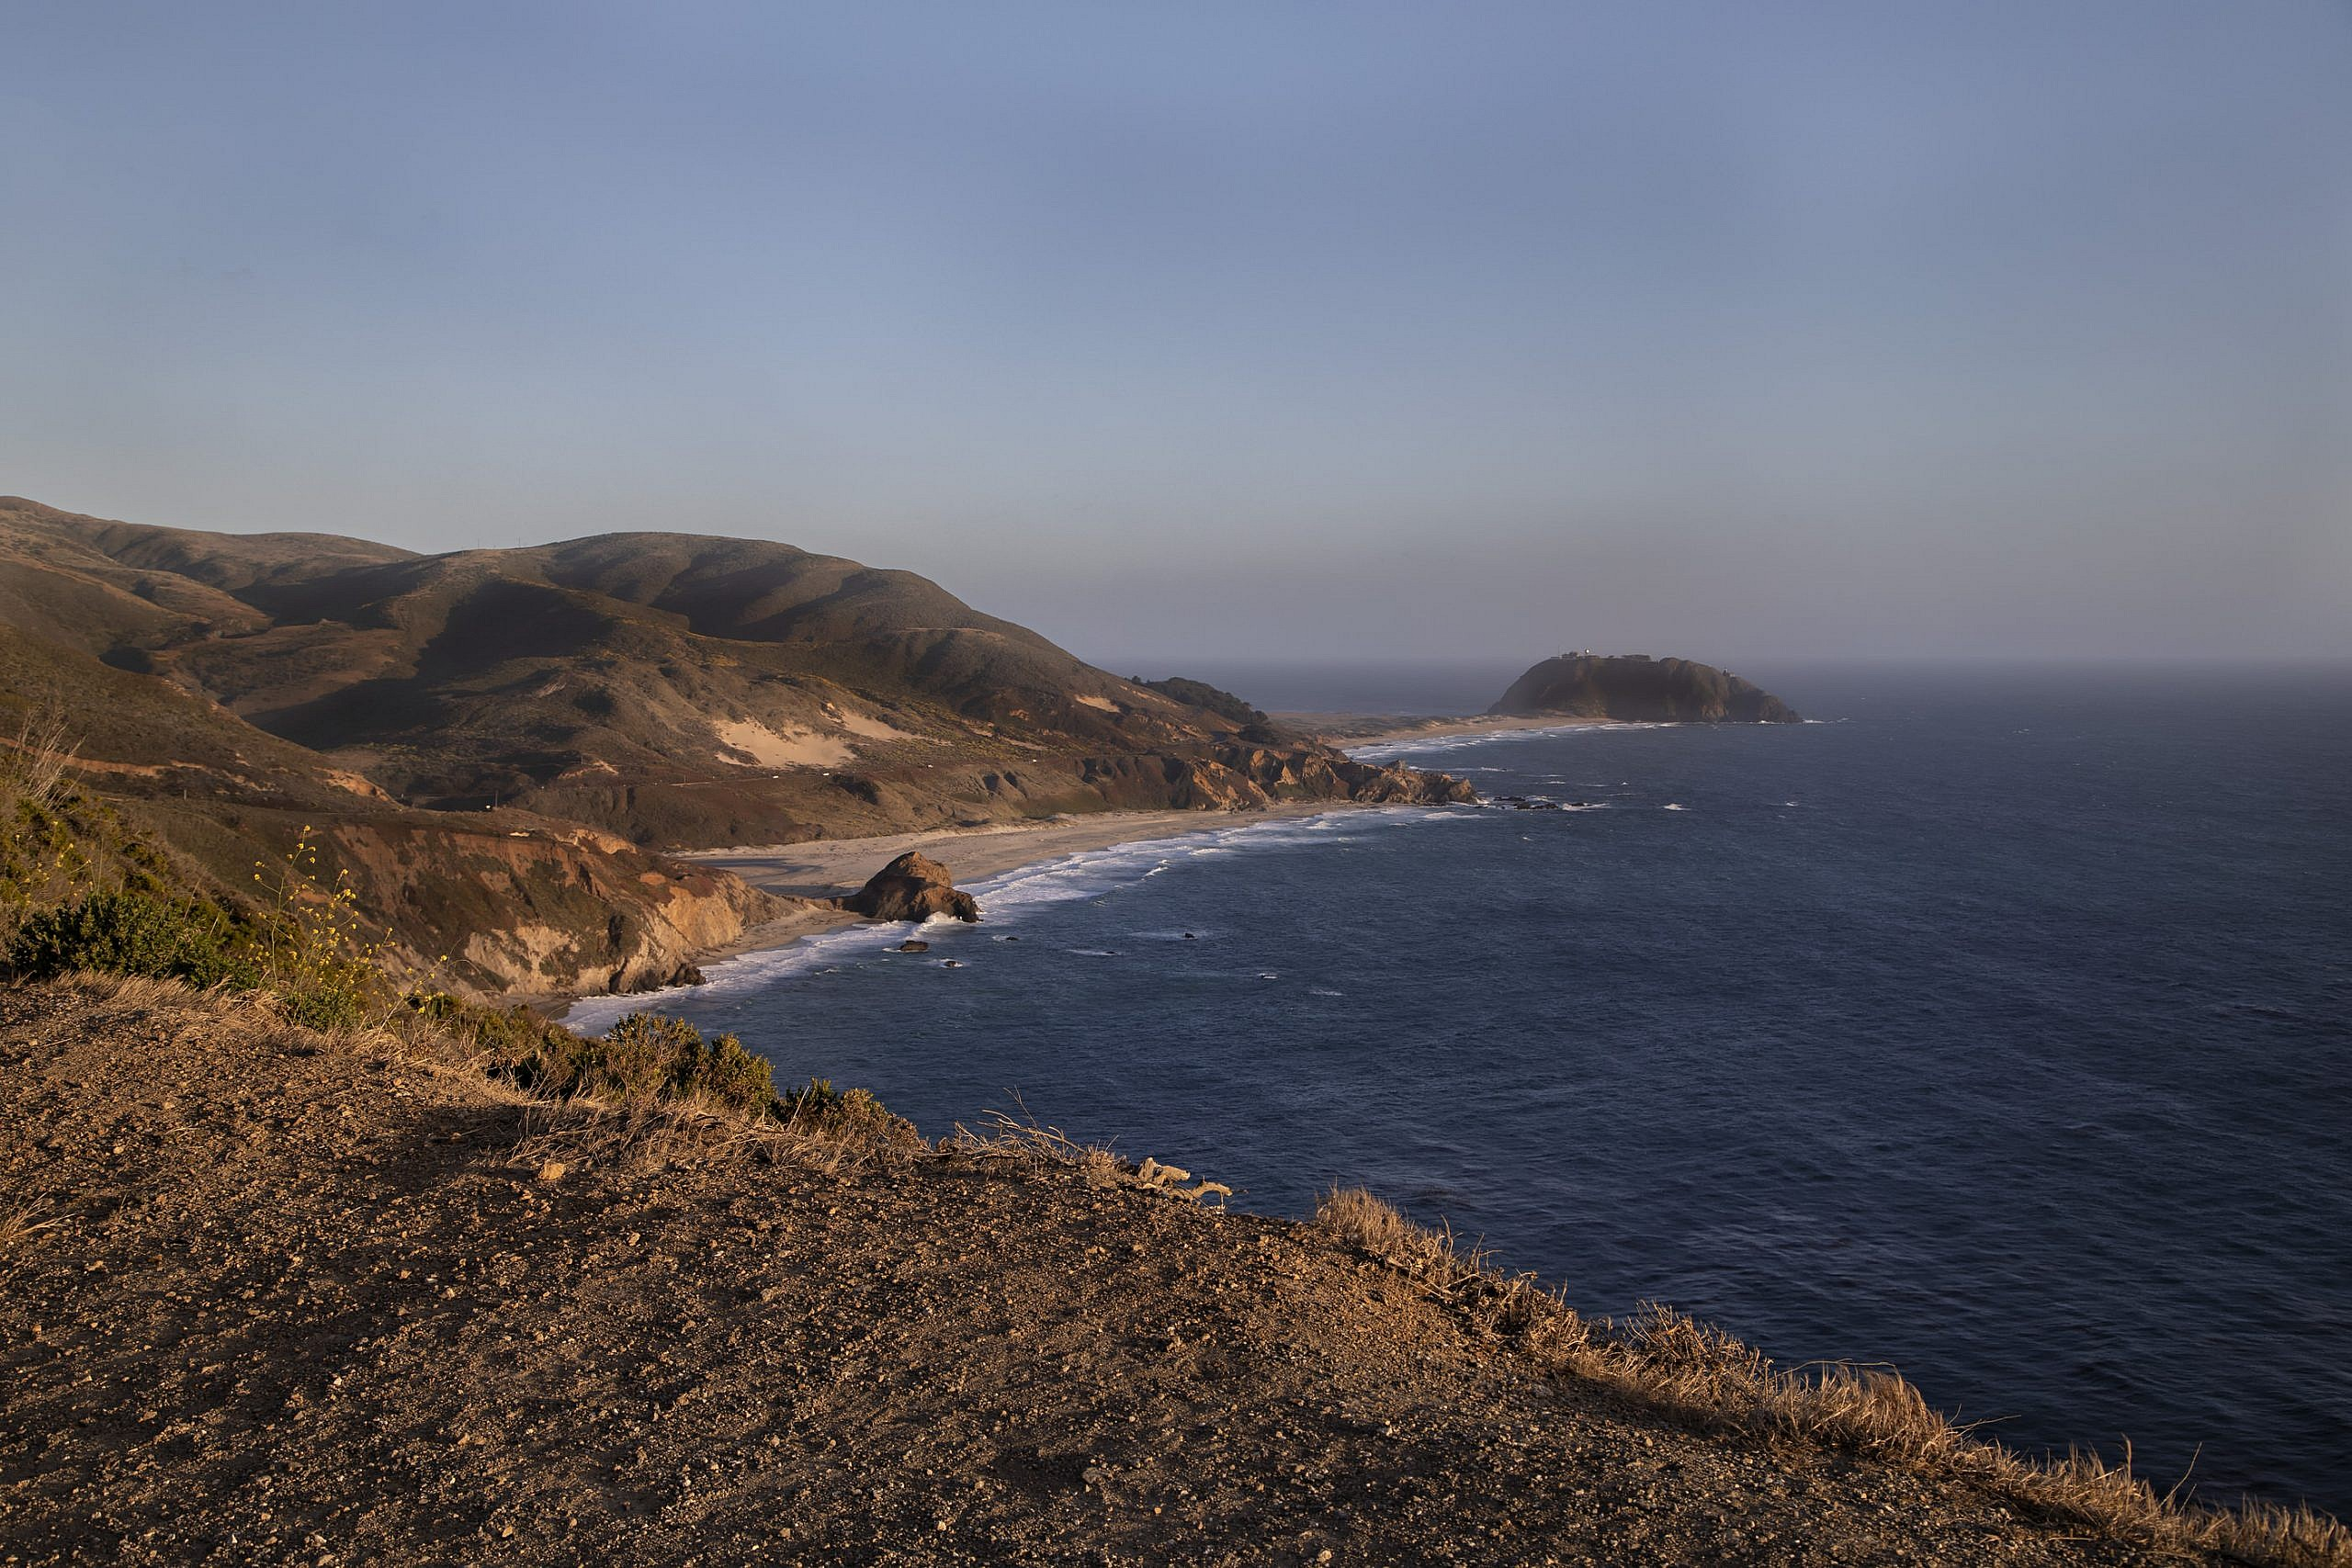 Looking toward Point Sur from Hurricane point